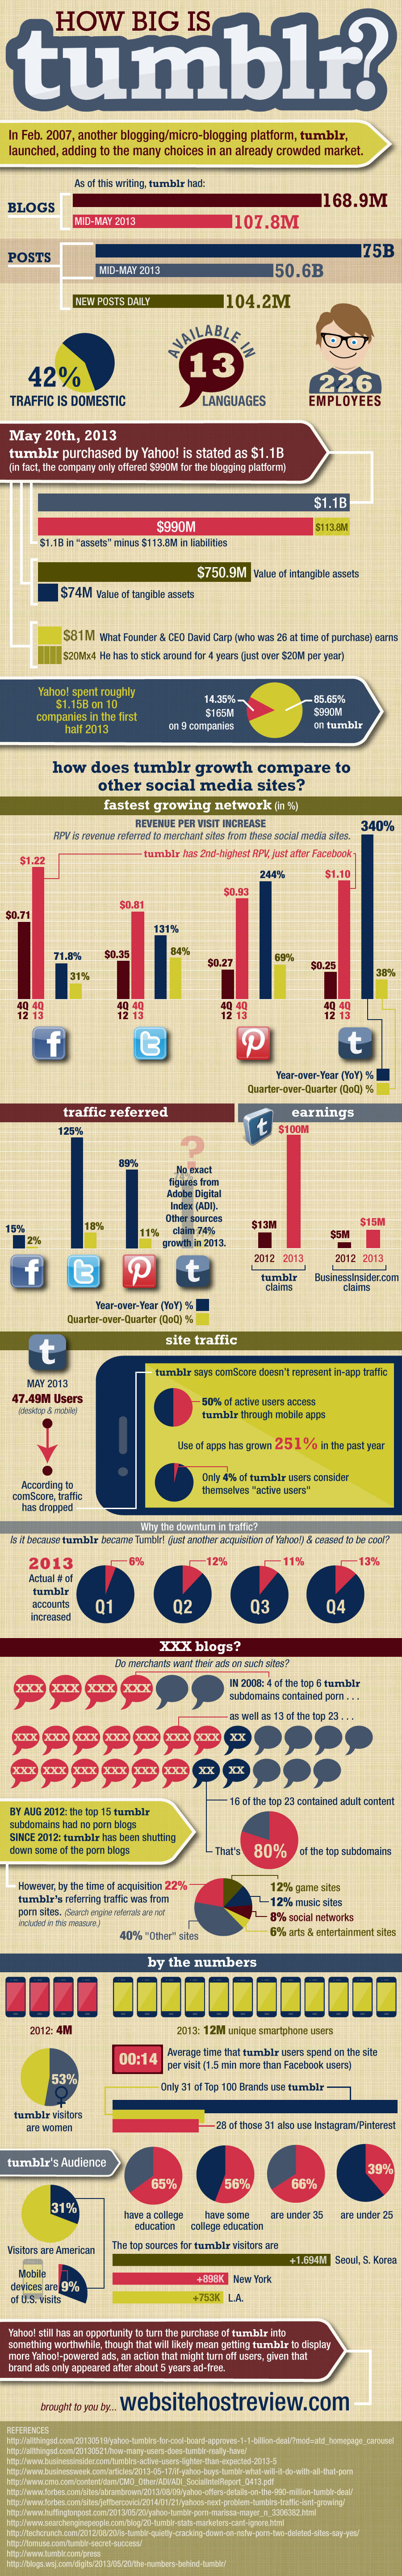 How Big is Tumblr? - infographic